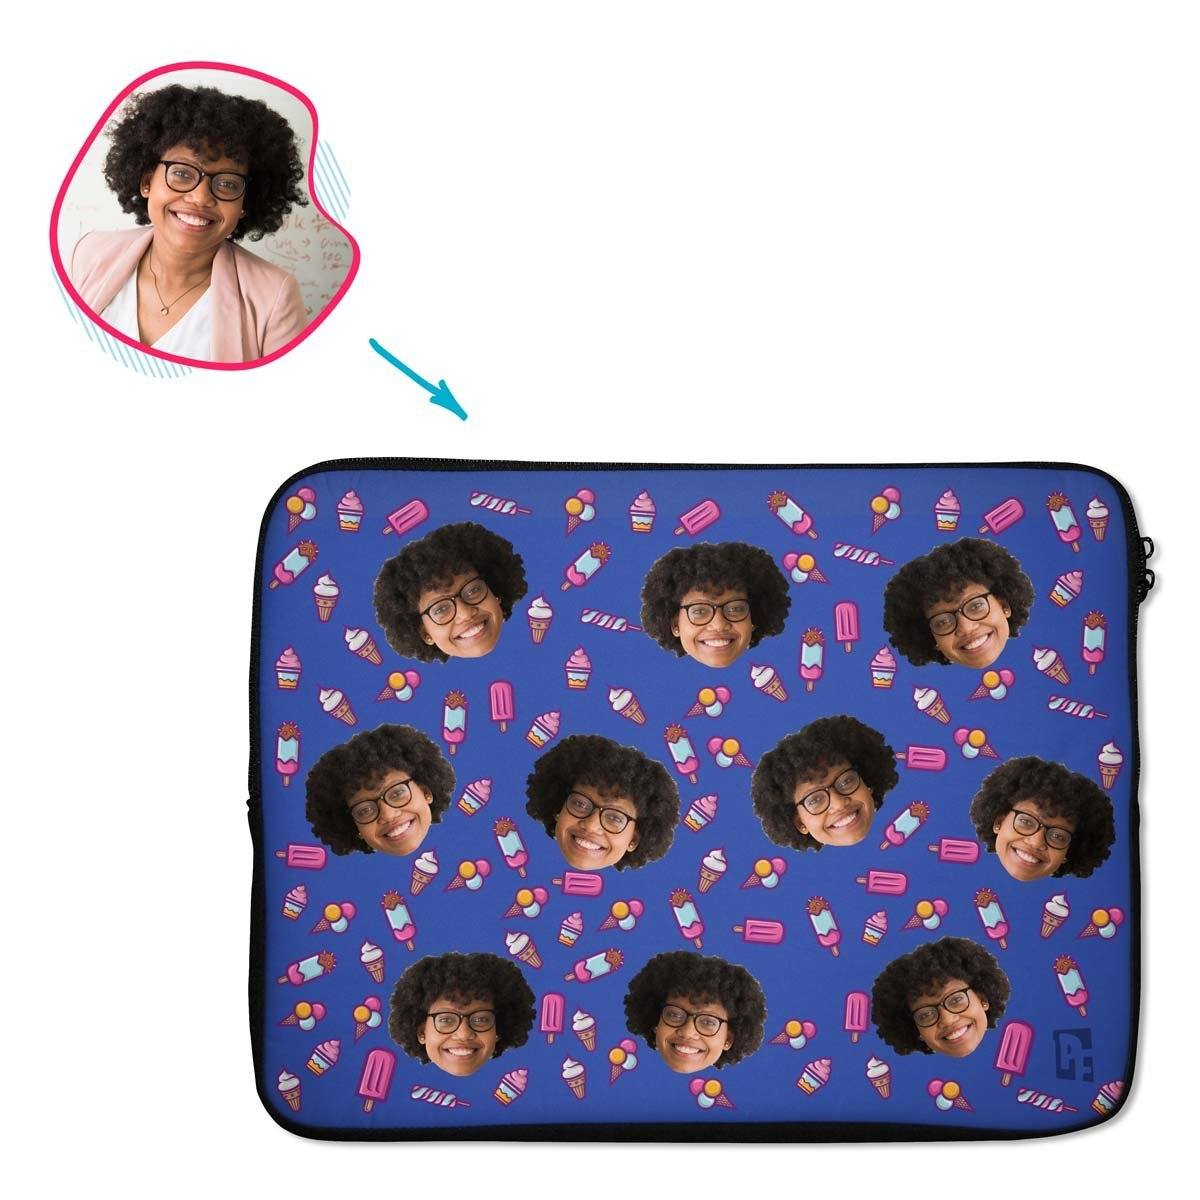 darkblue Candies laptop sleeve personalized with photo of face printed on them